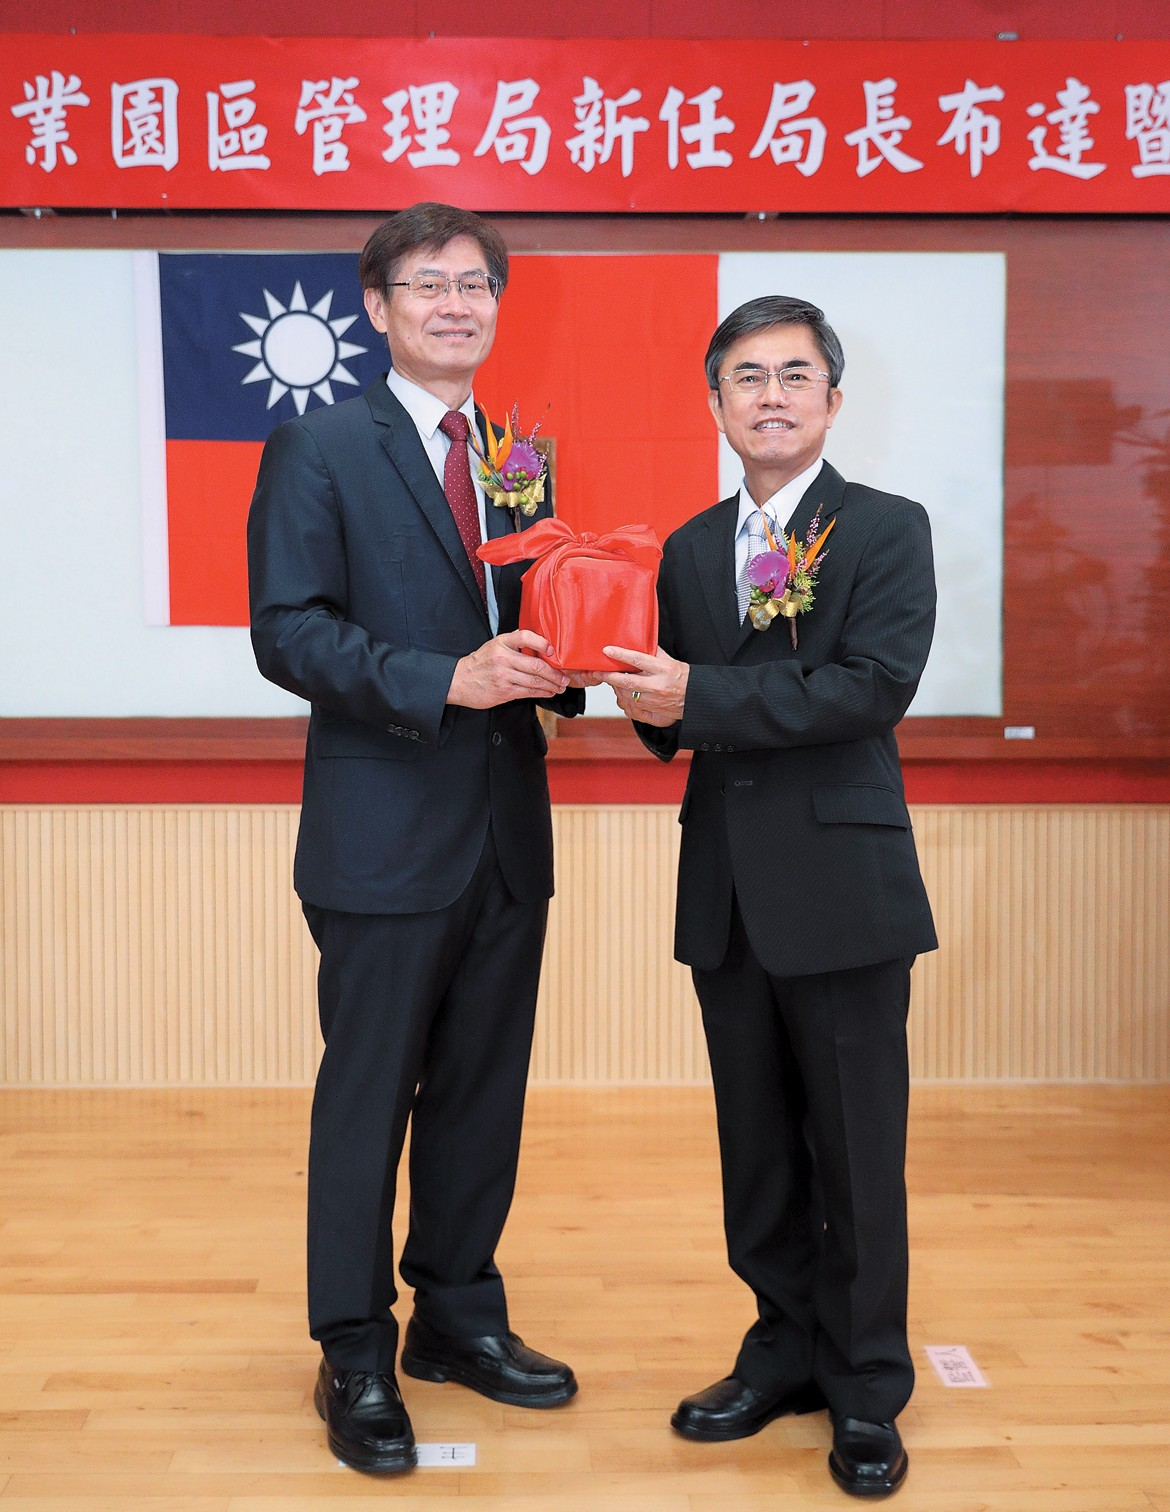 An Inauguration Ceremony Held for CTSP's New Director, Dr. Maw-Shin Hsu